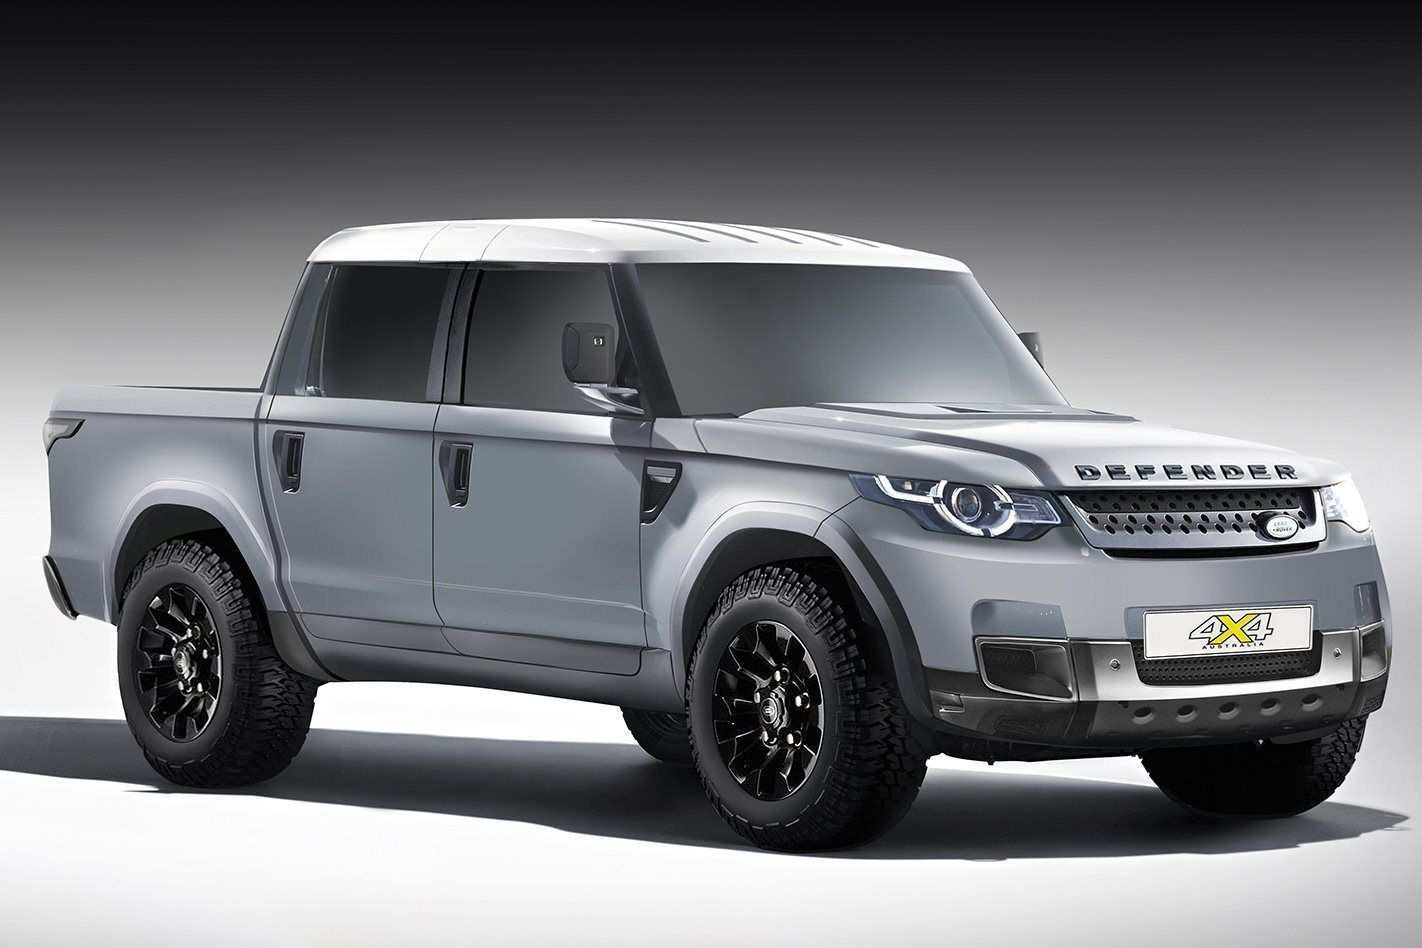 63 The 2019 Land Rover Defender Price Exterior And Interior